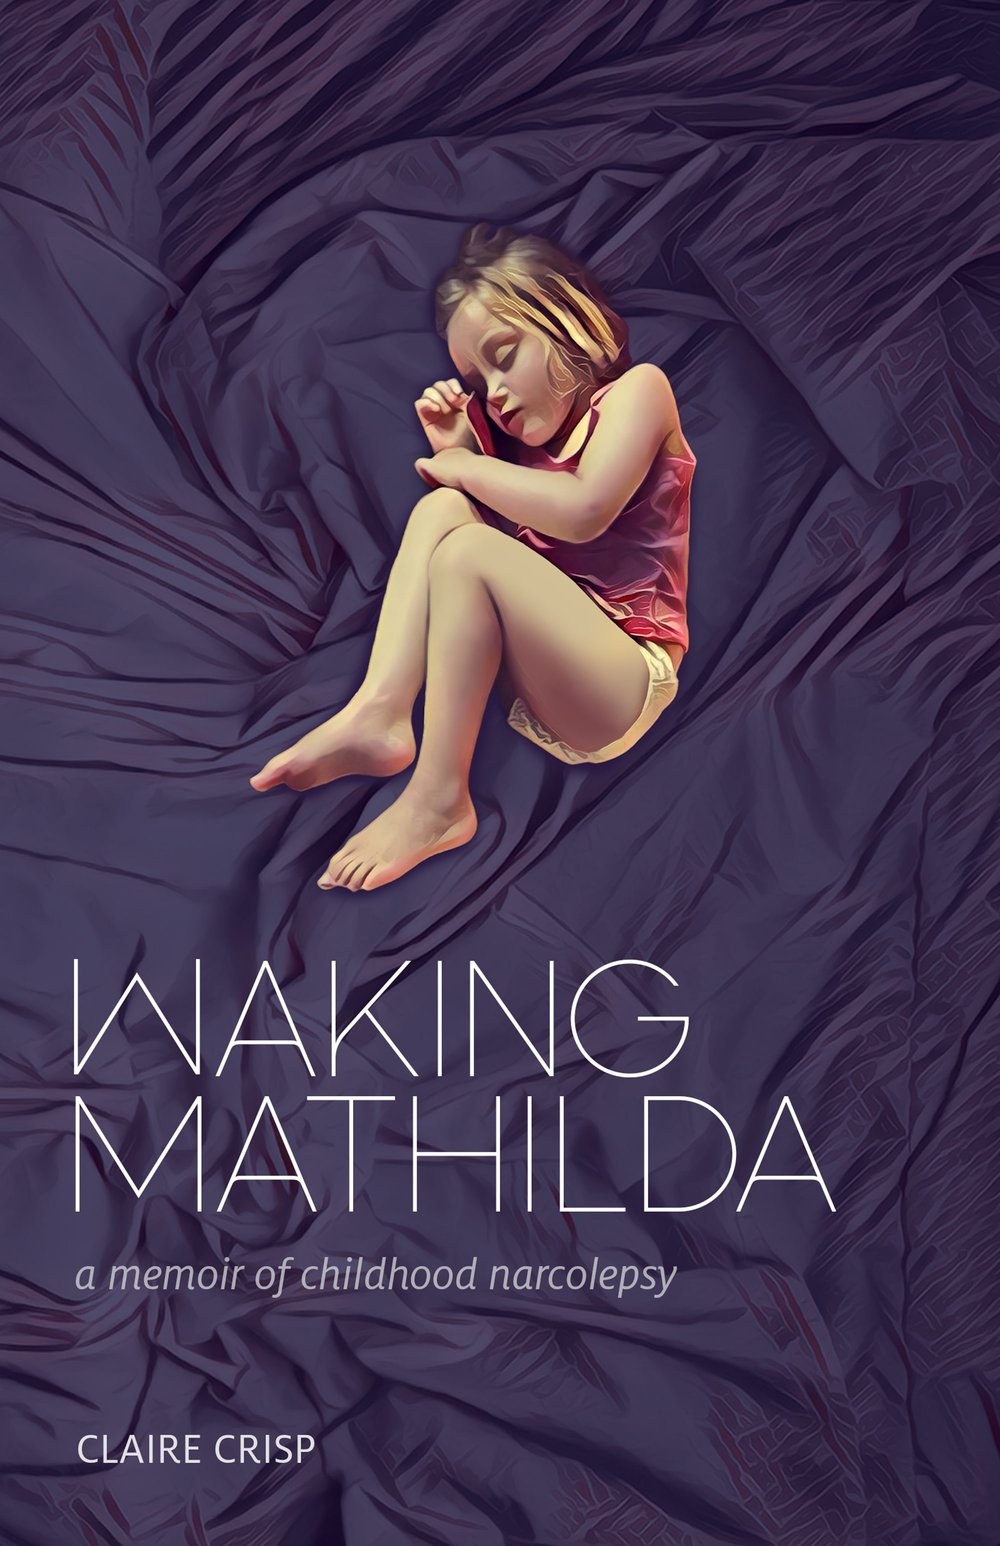 Waking Mathilda is available at:  https://www.amazon.com/s/ref=nb_sb_noss_2?url=search-alias%3Daps&field-keywords=waking+mathilda